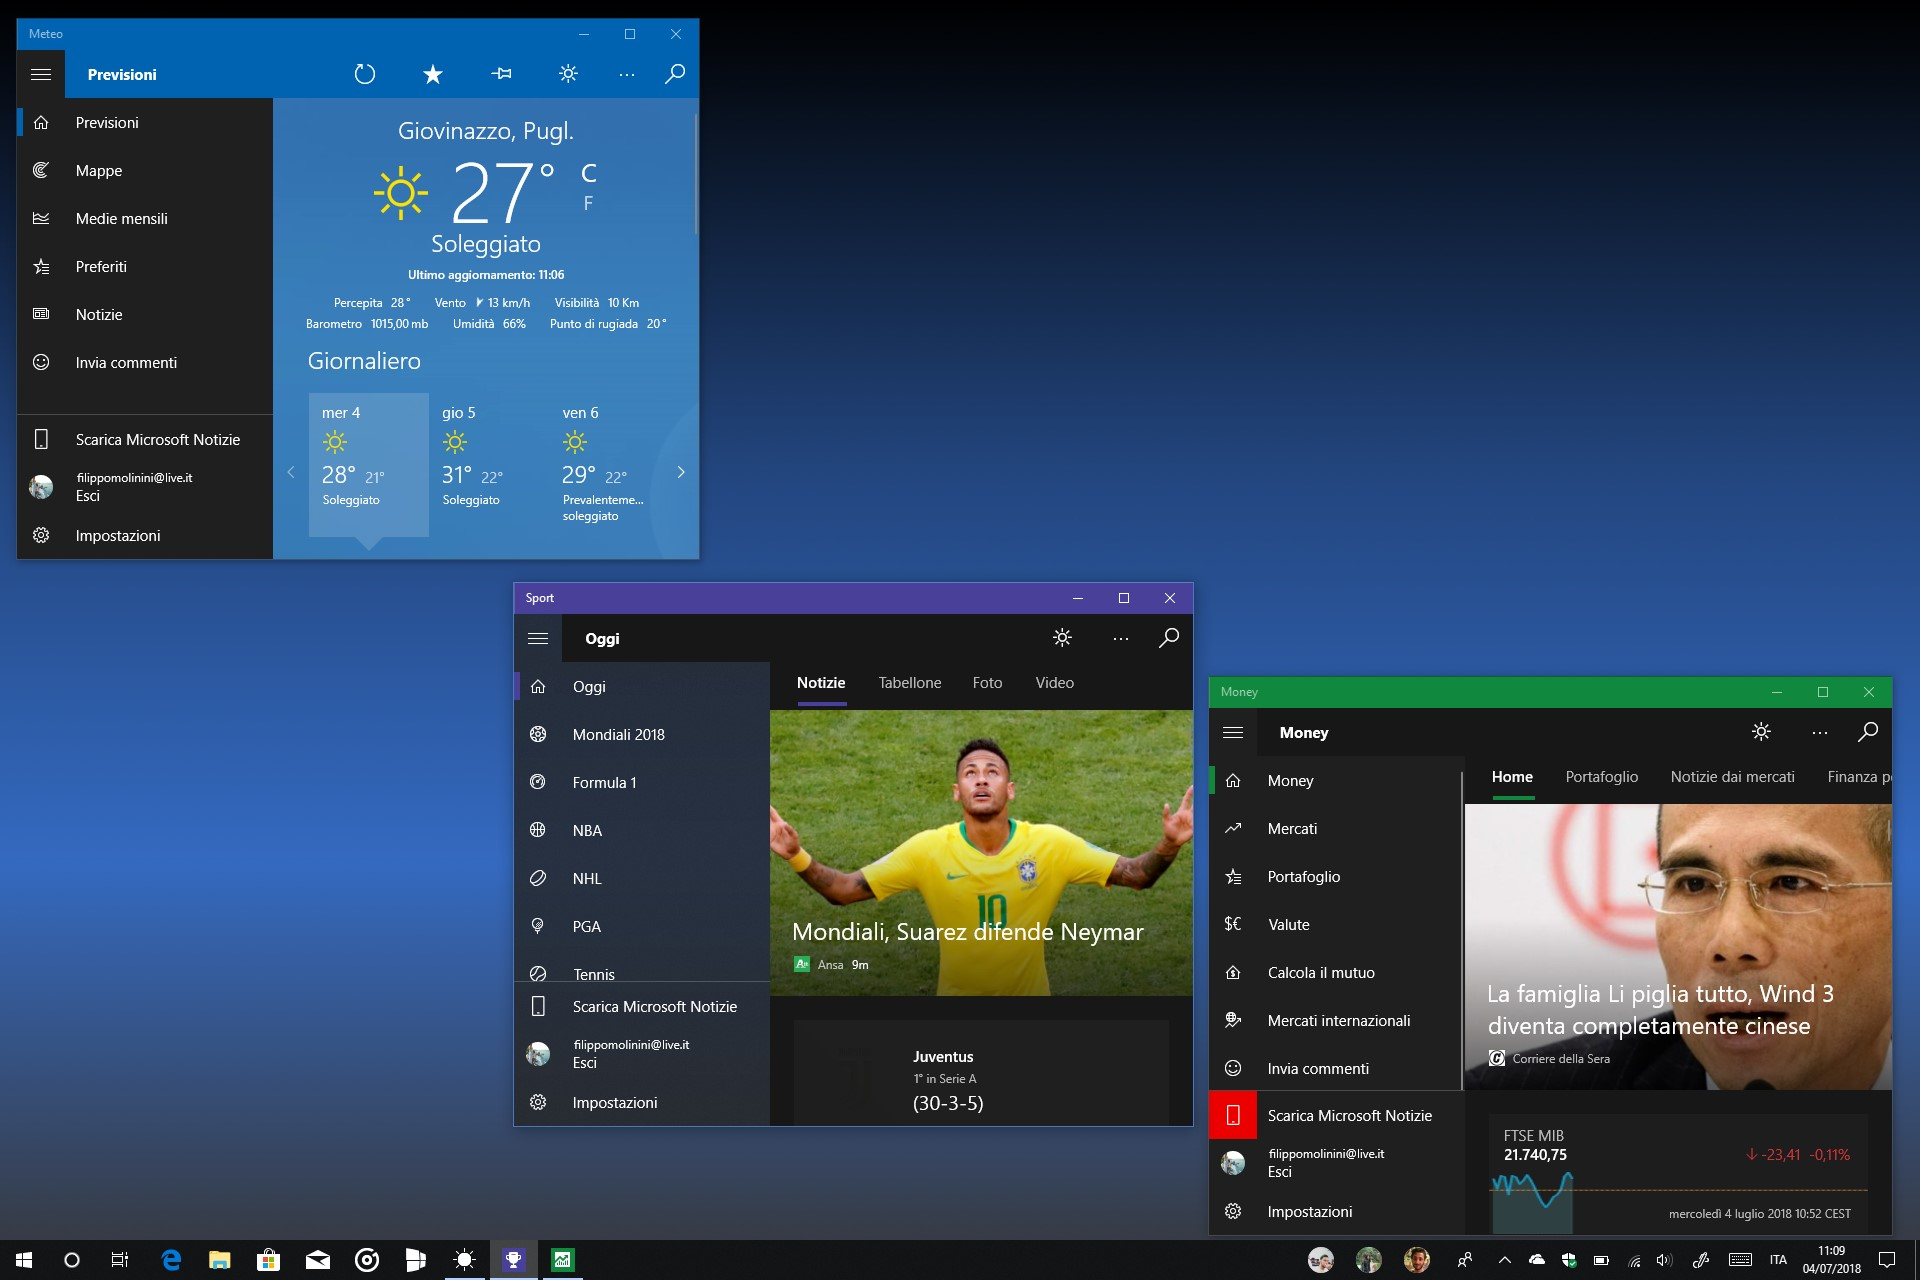 App MSN Meteo MSN Sport MSN Money Fluent Design